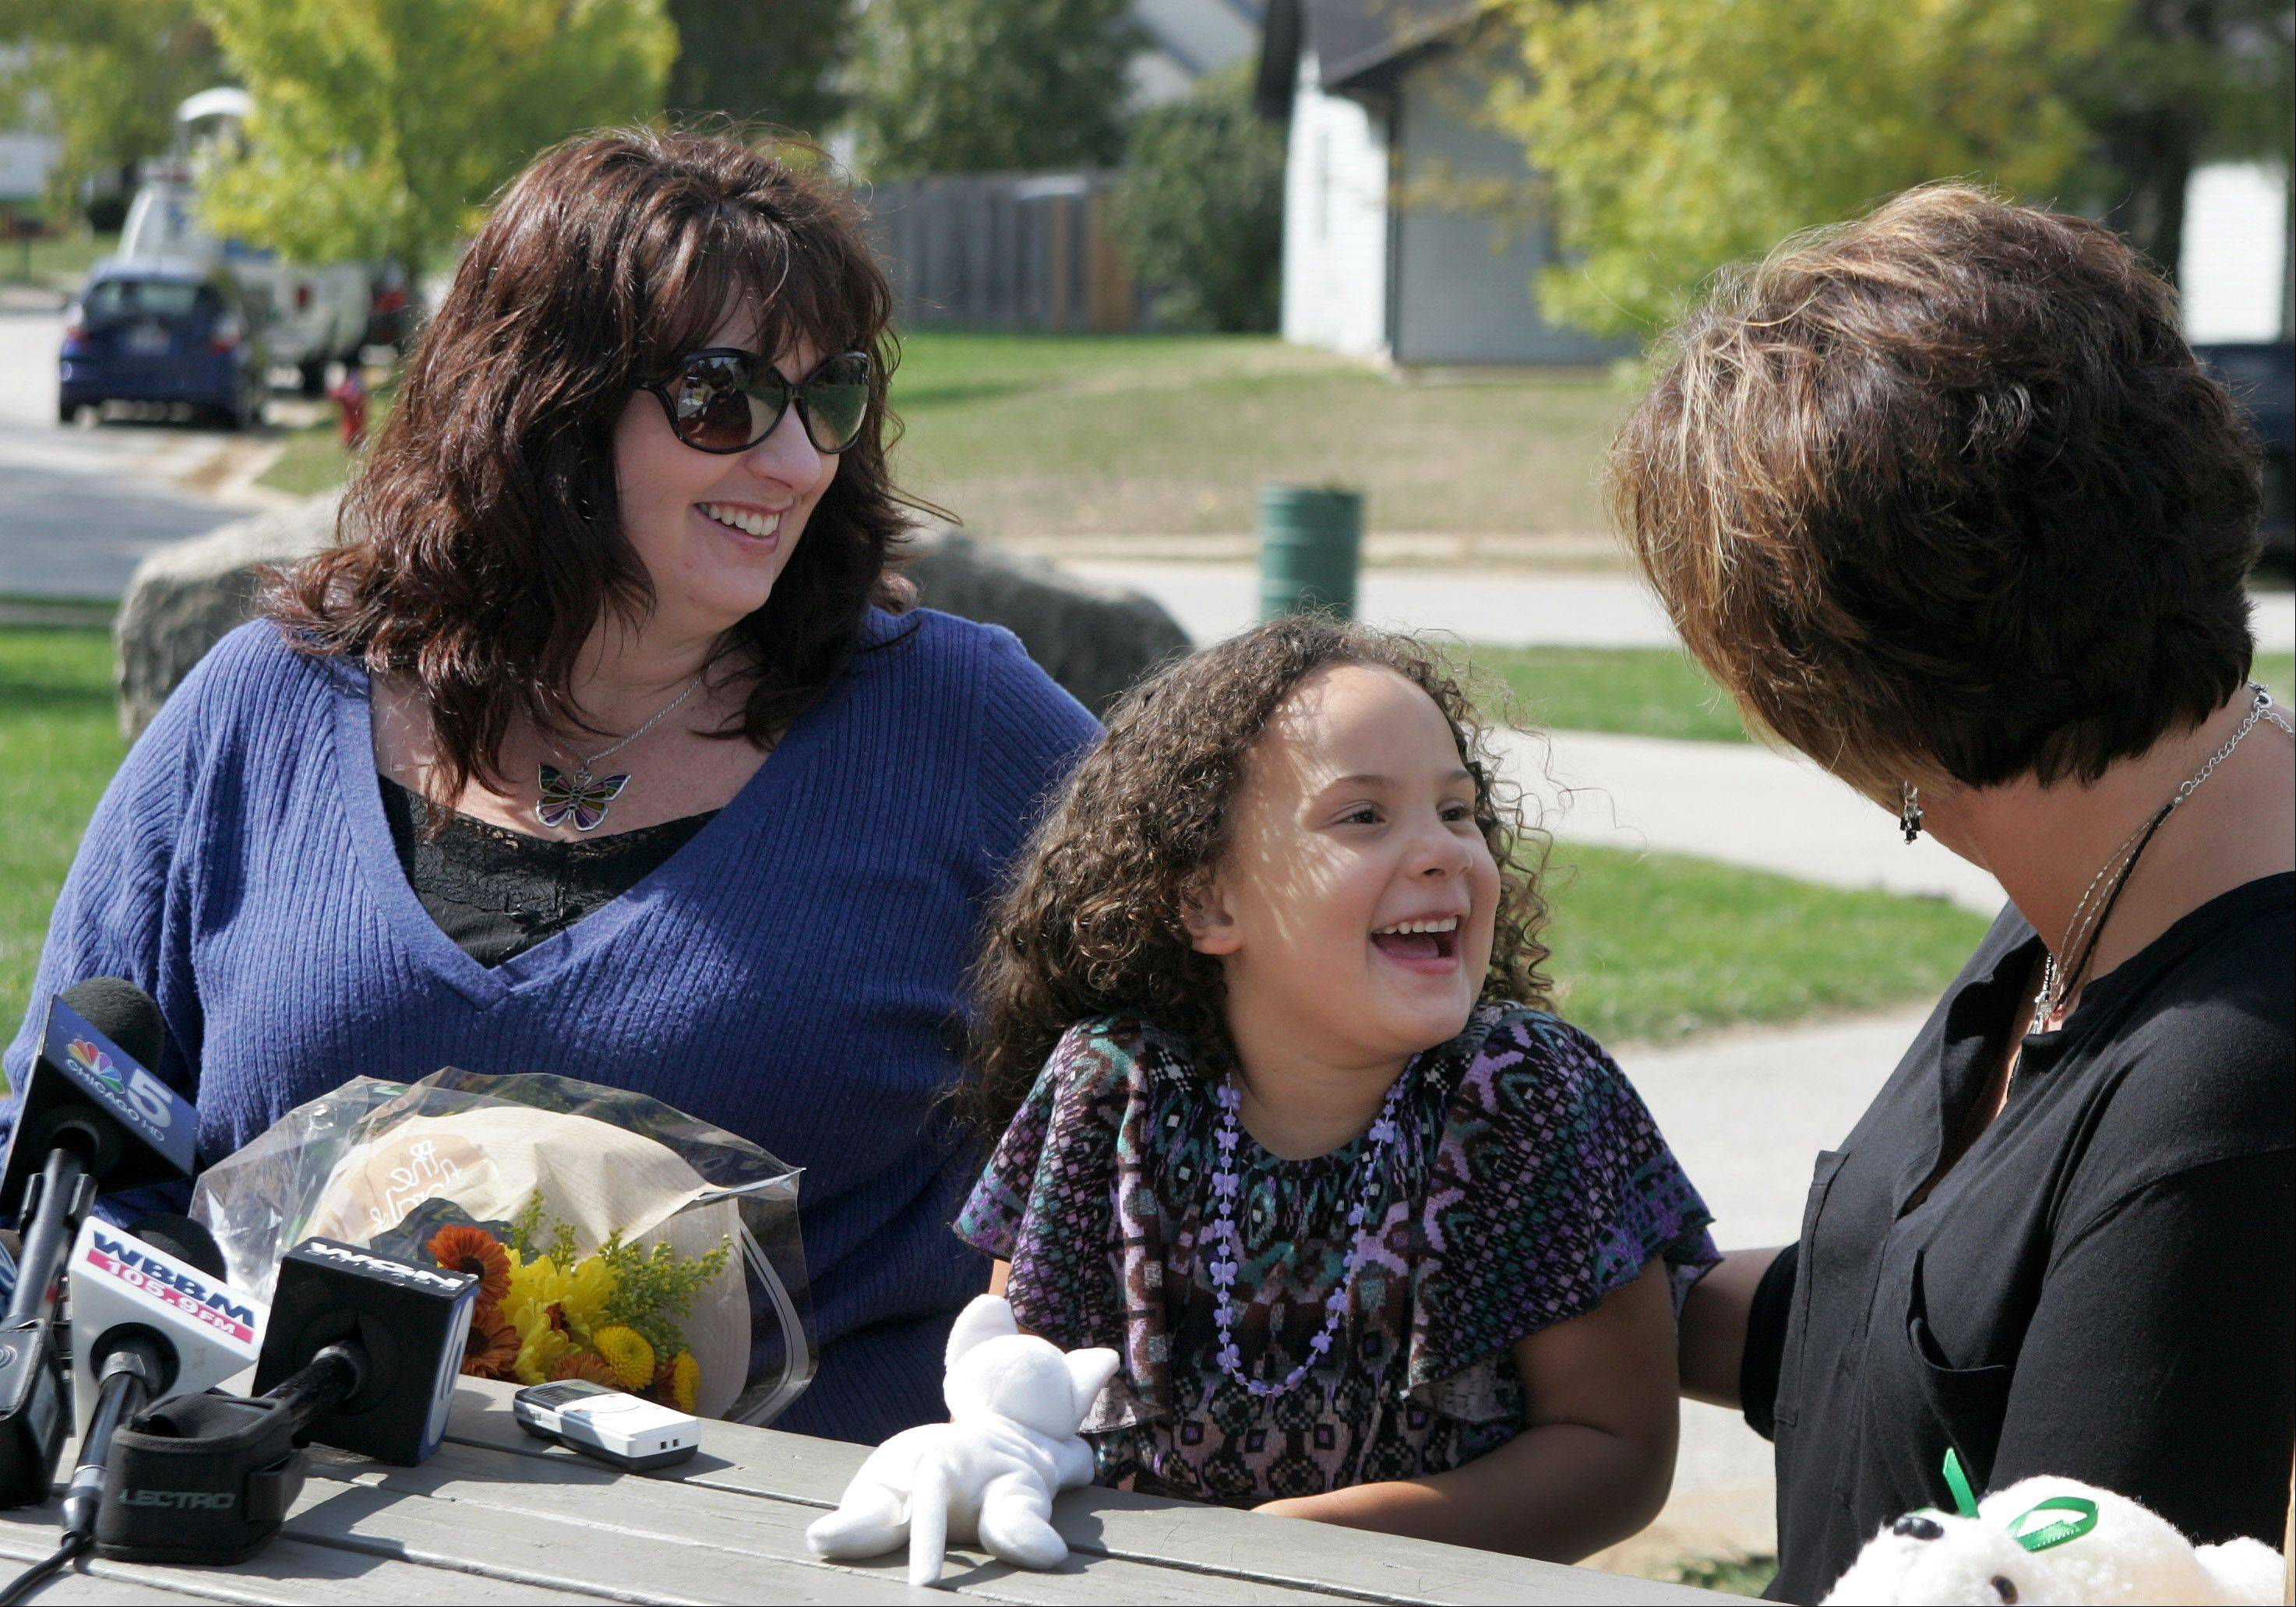 Diana Jensen and her daughter, Livia, 4, meet with Aurora 911 dispatcher Jill Schmidt three days after Schmidt answered Livia's 911 call and dispatched medical help to their home for Jensen, who has Lupus and was dealing with intense pain.